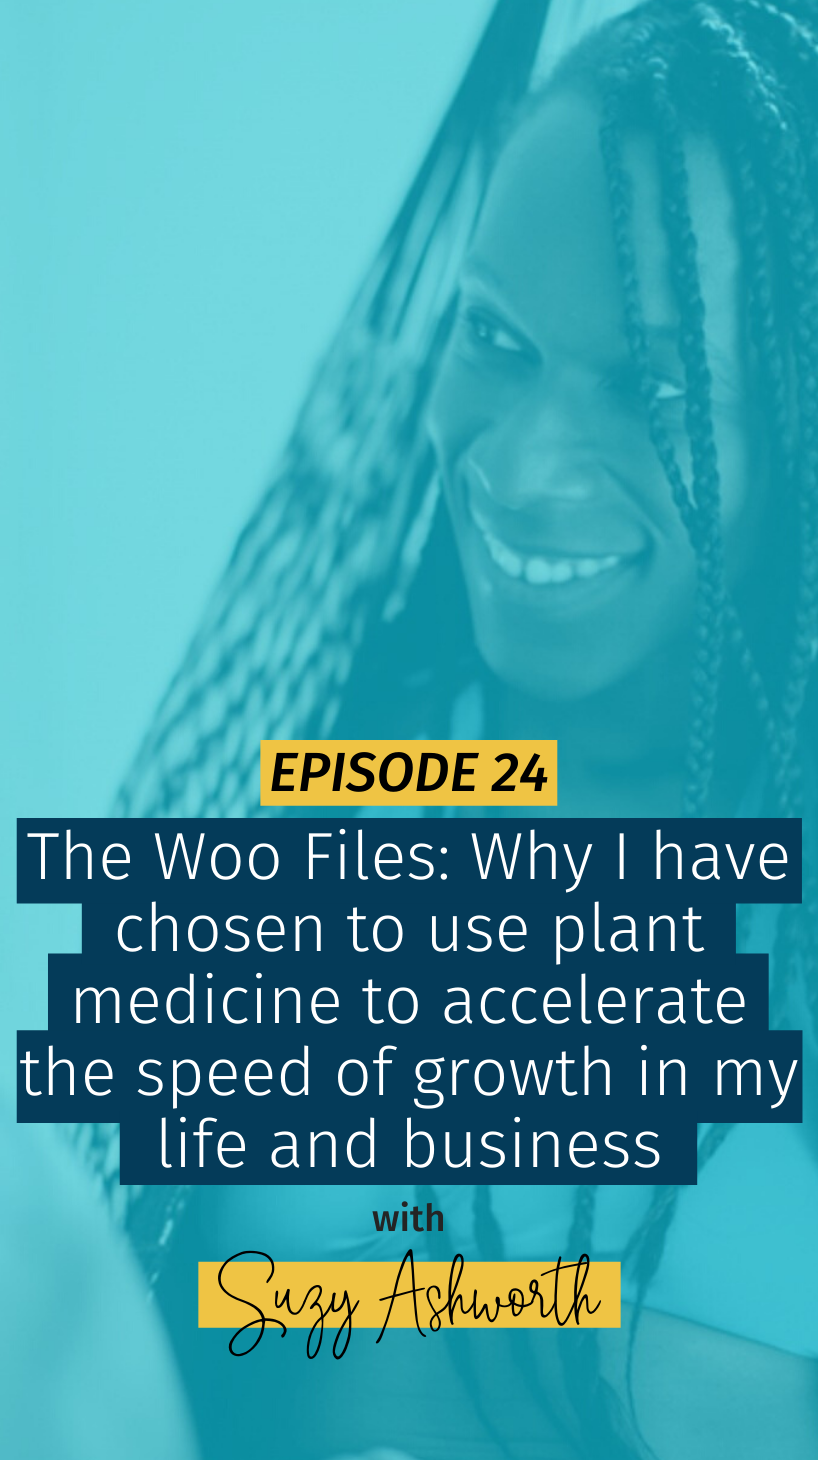 024 The Woo Files: Why I have chosen to use plant medicine to accelerate the speed of growth in my life and business